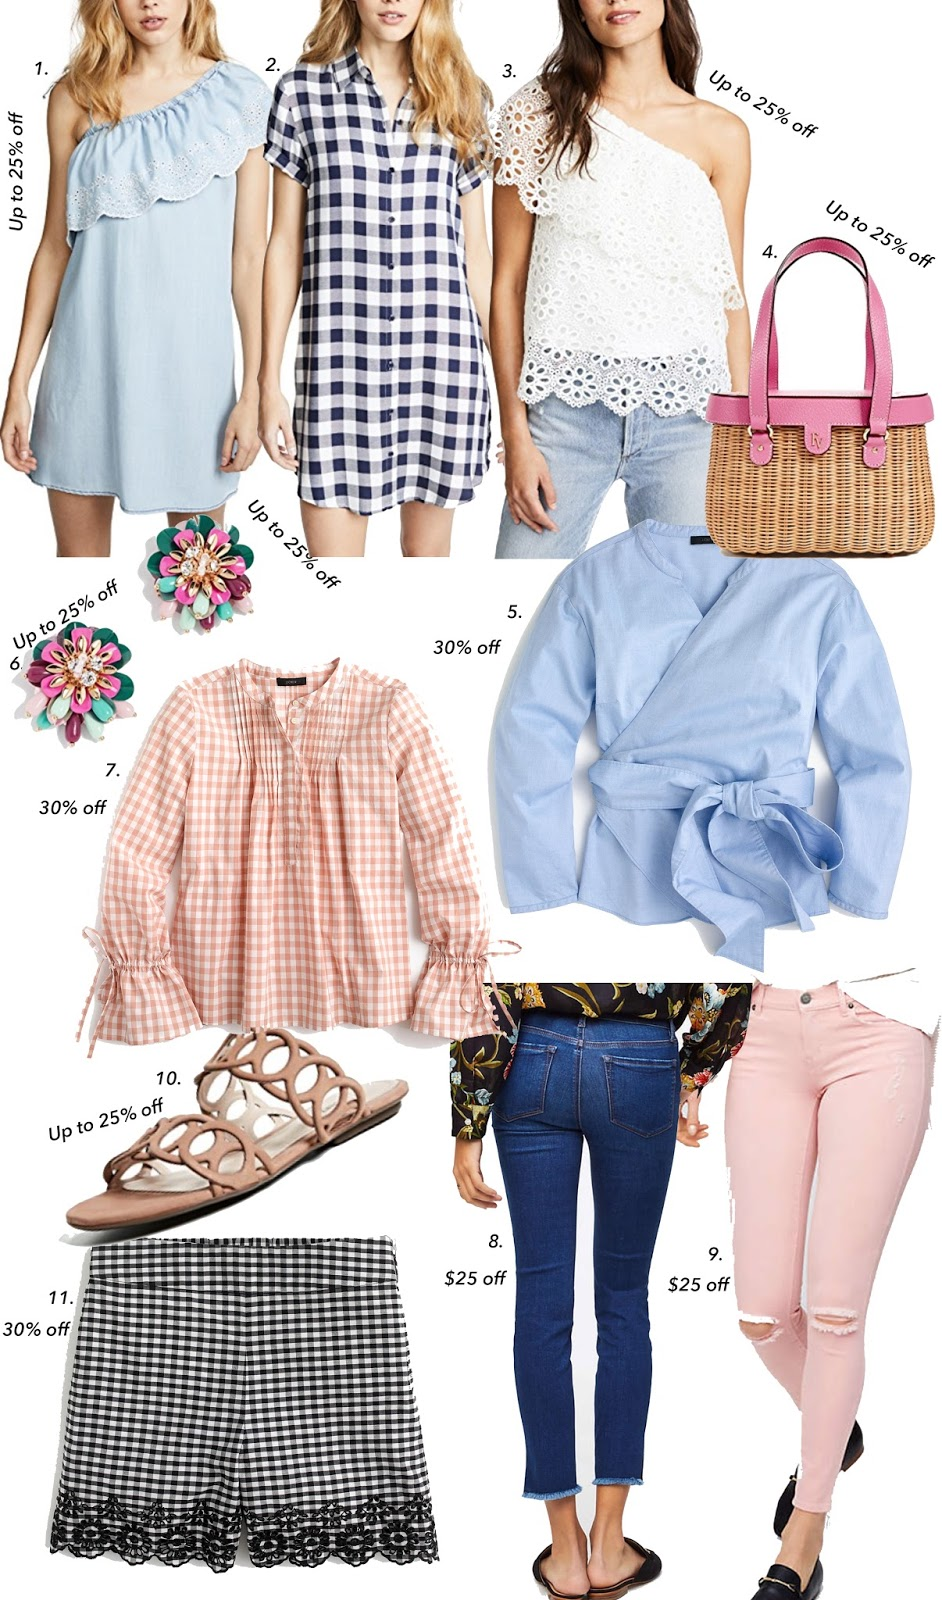 Weekend Sales - Something Delightful Blog